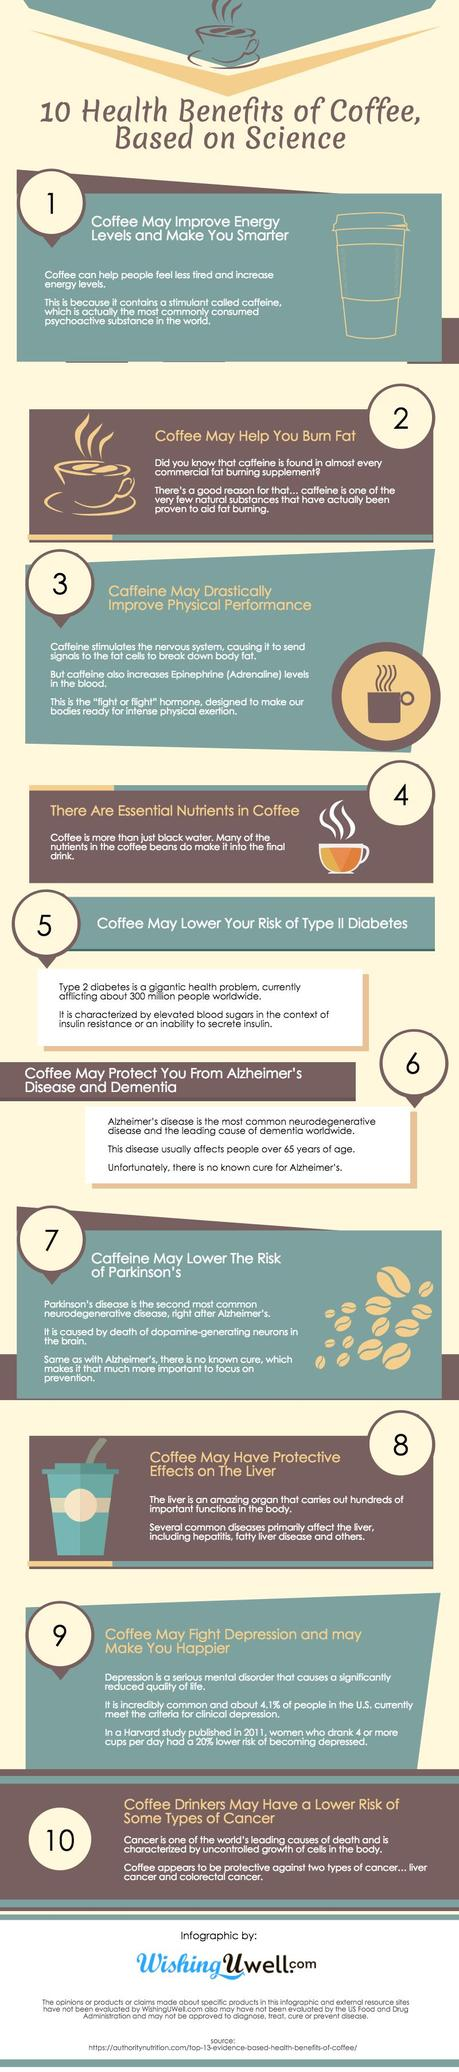 10 Health Benefits of Coffee